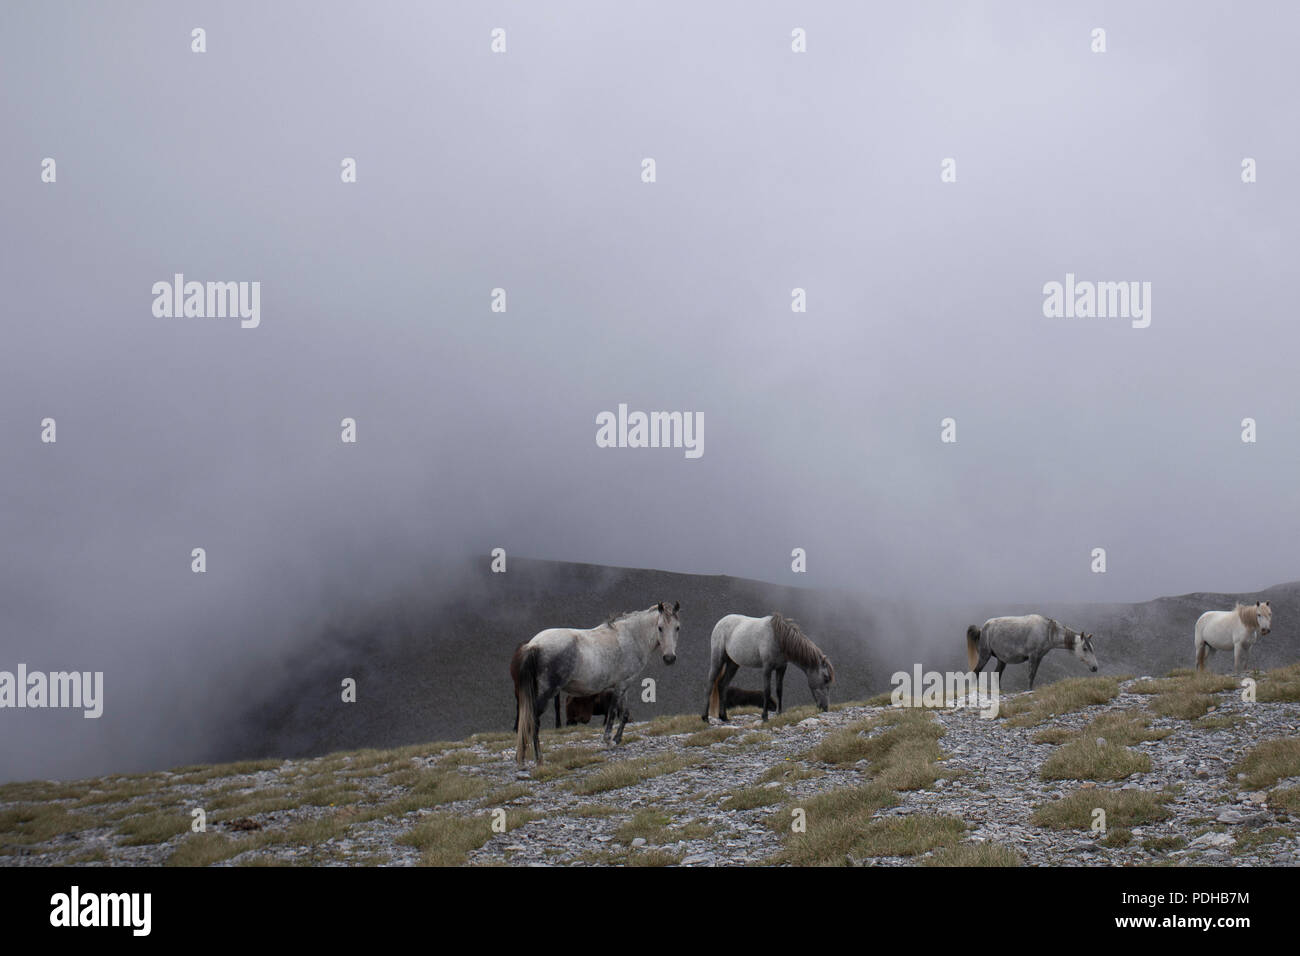 Katerini, Greece. 9th Aug, 2018. Photo taken on Aug. 8, 2018 shows wild horses in the alpine zone of Mount Olympus, northern Greece. Mount Olympus is the highest mountain in Greece with the highest peak of 2,917 meters. Olympus is notable in Greek mythology as the home of the Greek gods. Credit: Dimitris Tosidis/Xinhua/Alamy Live News - Stock Image